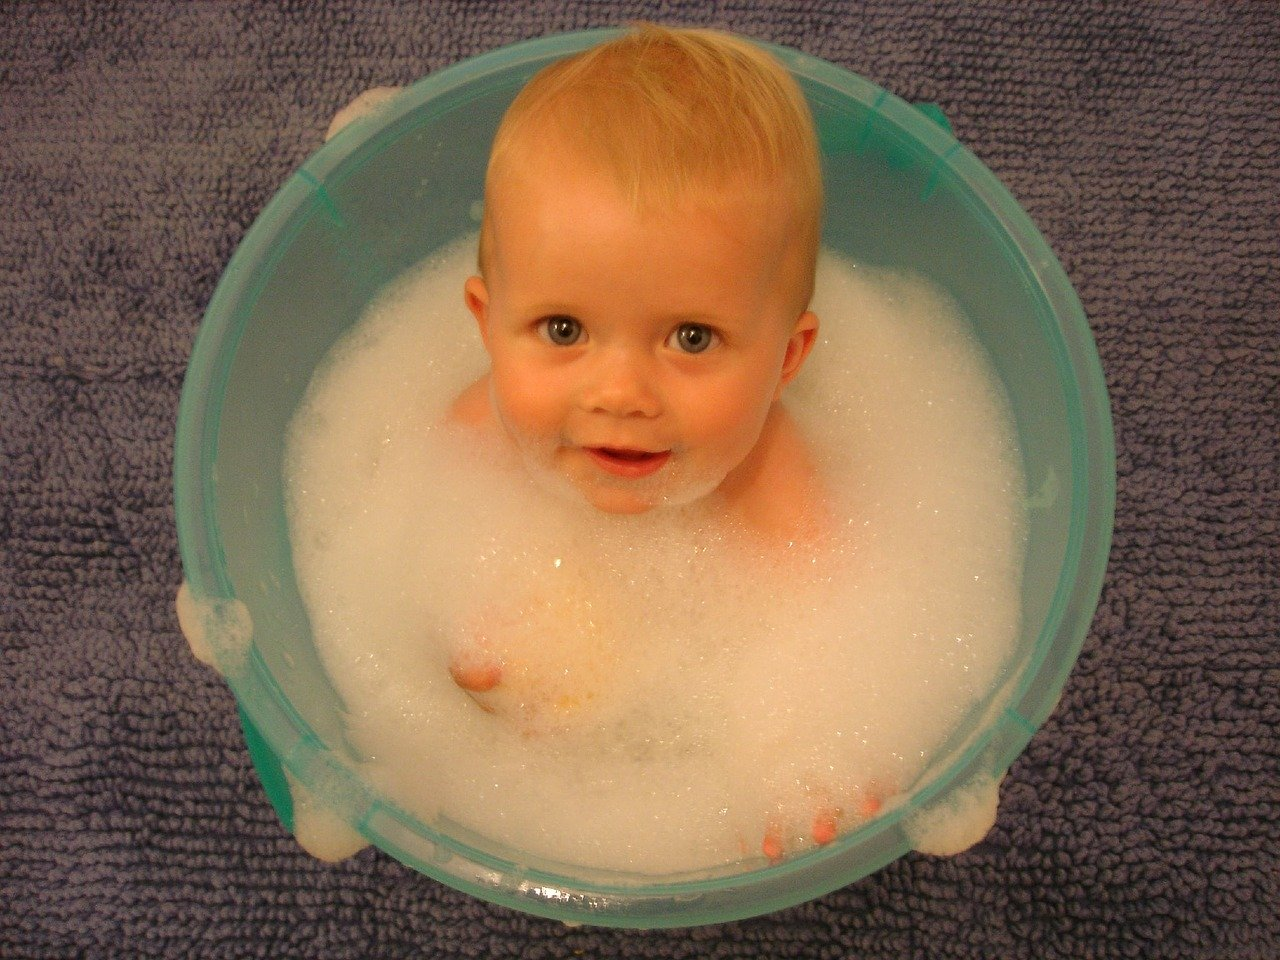 baby-in-a-bucket-water-quality.jpg